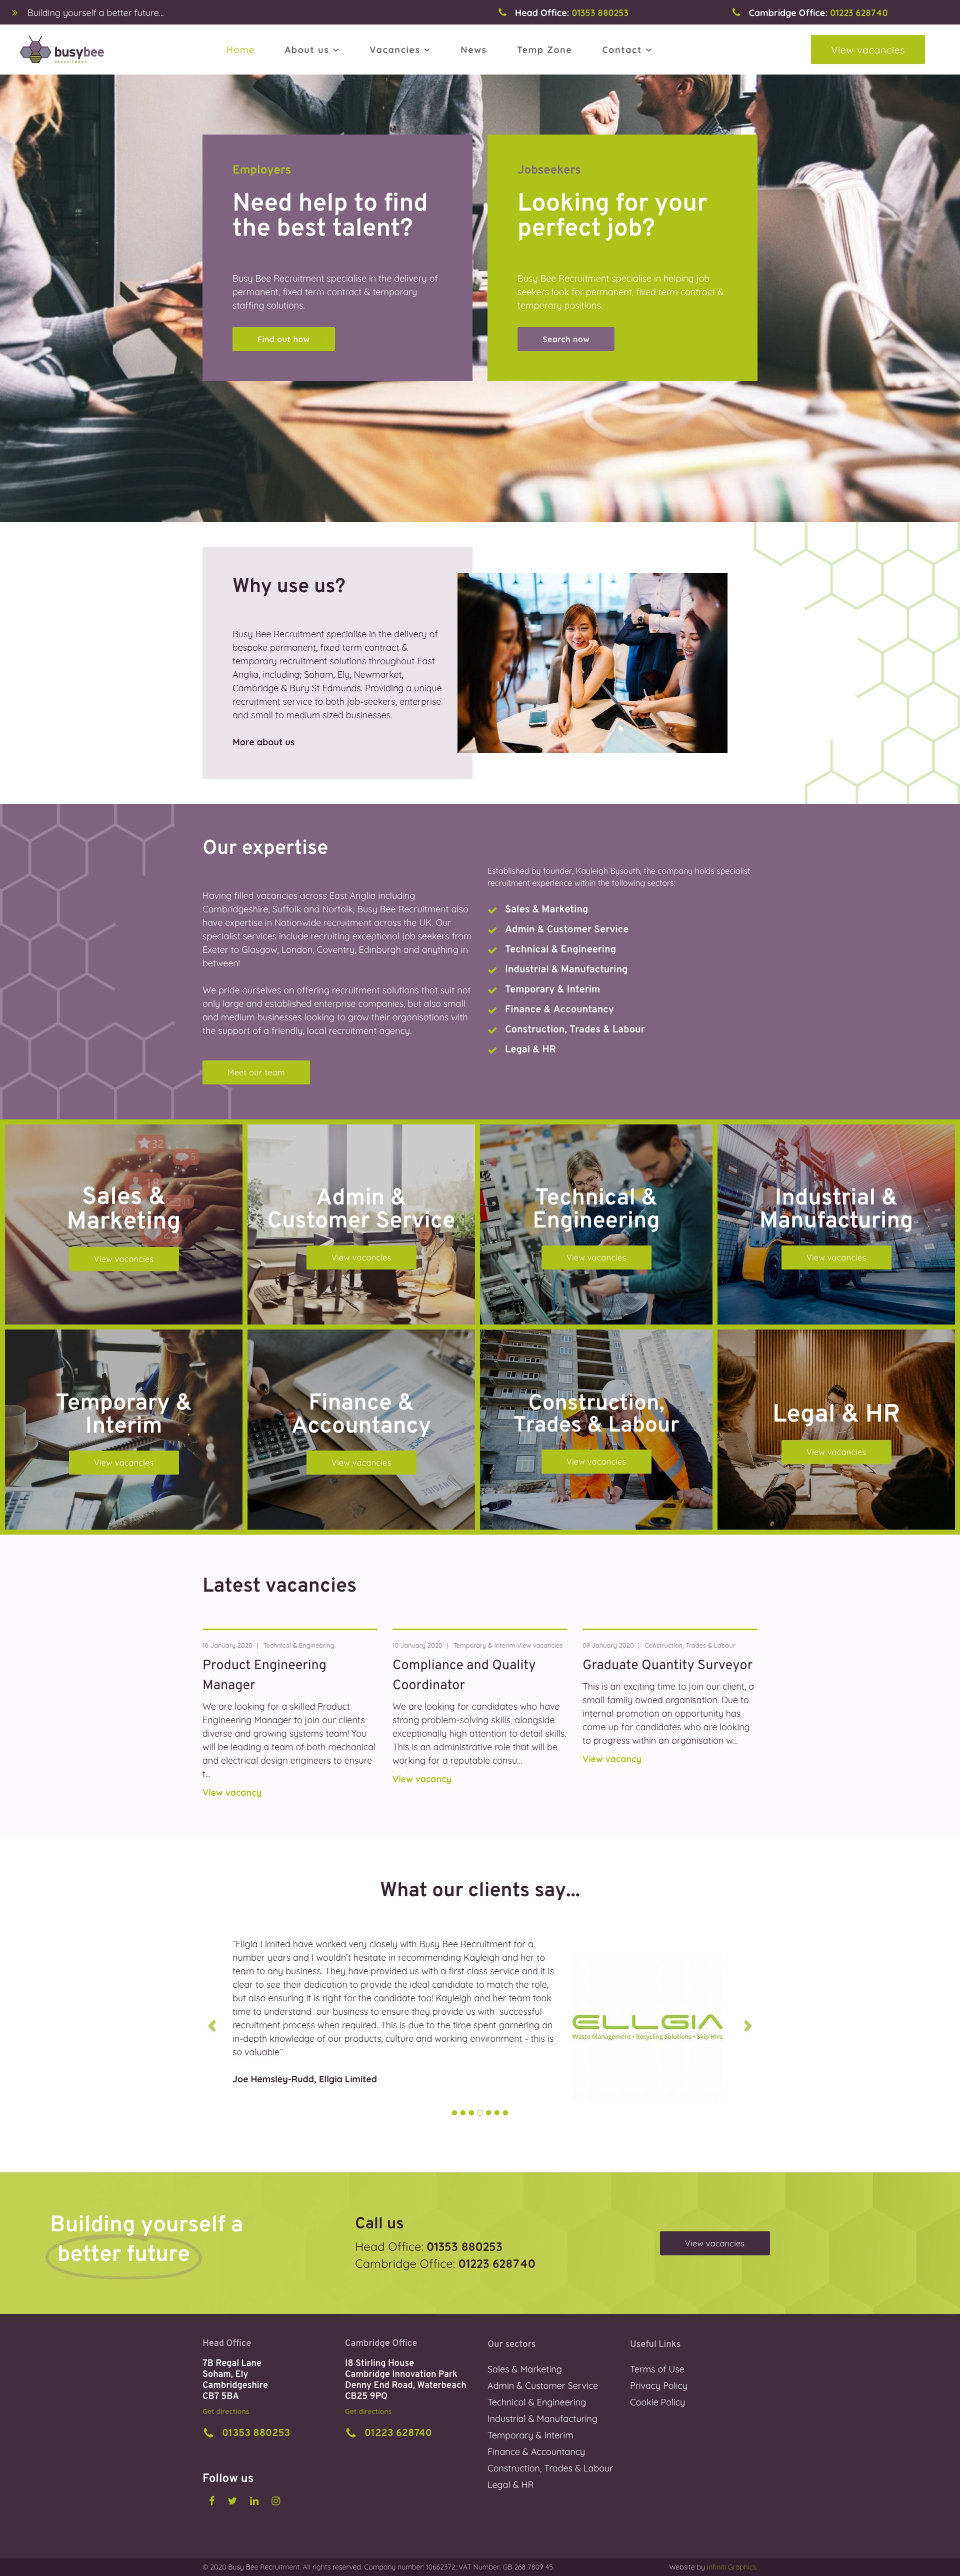 Busy Bee website